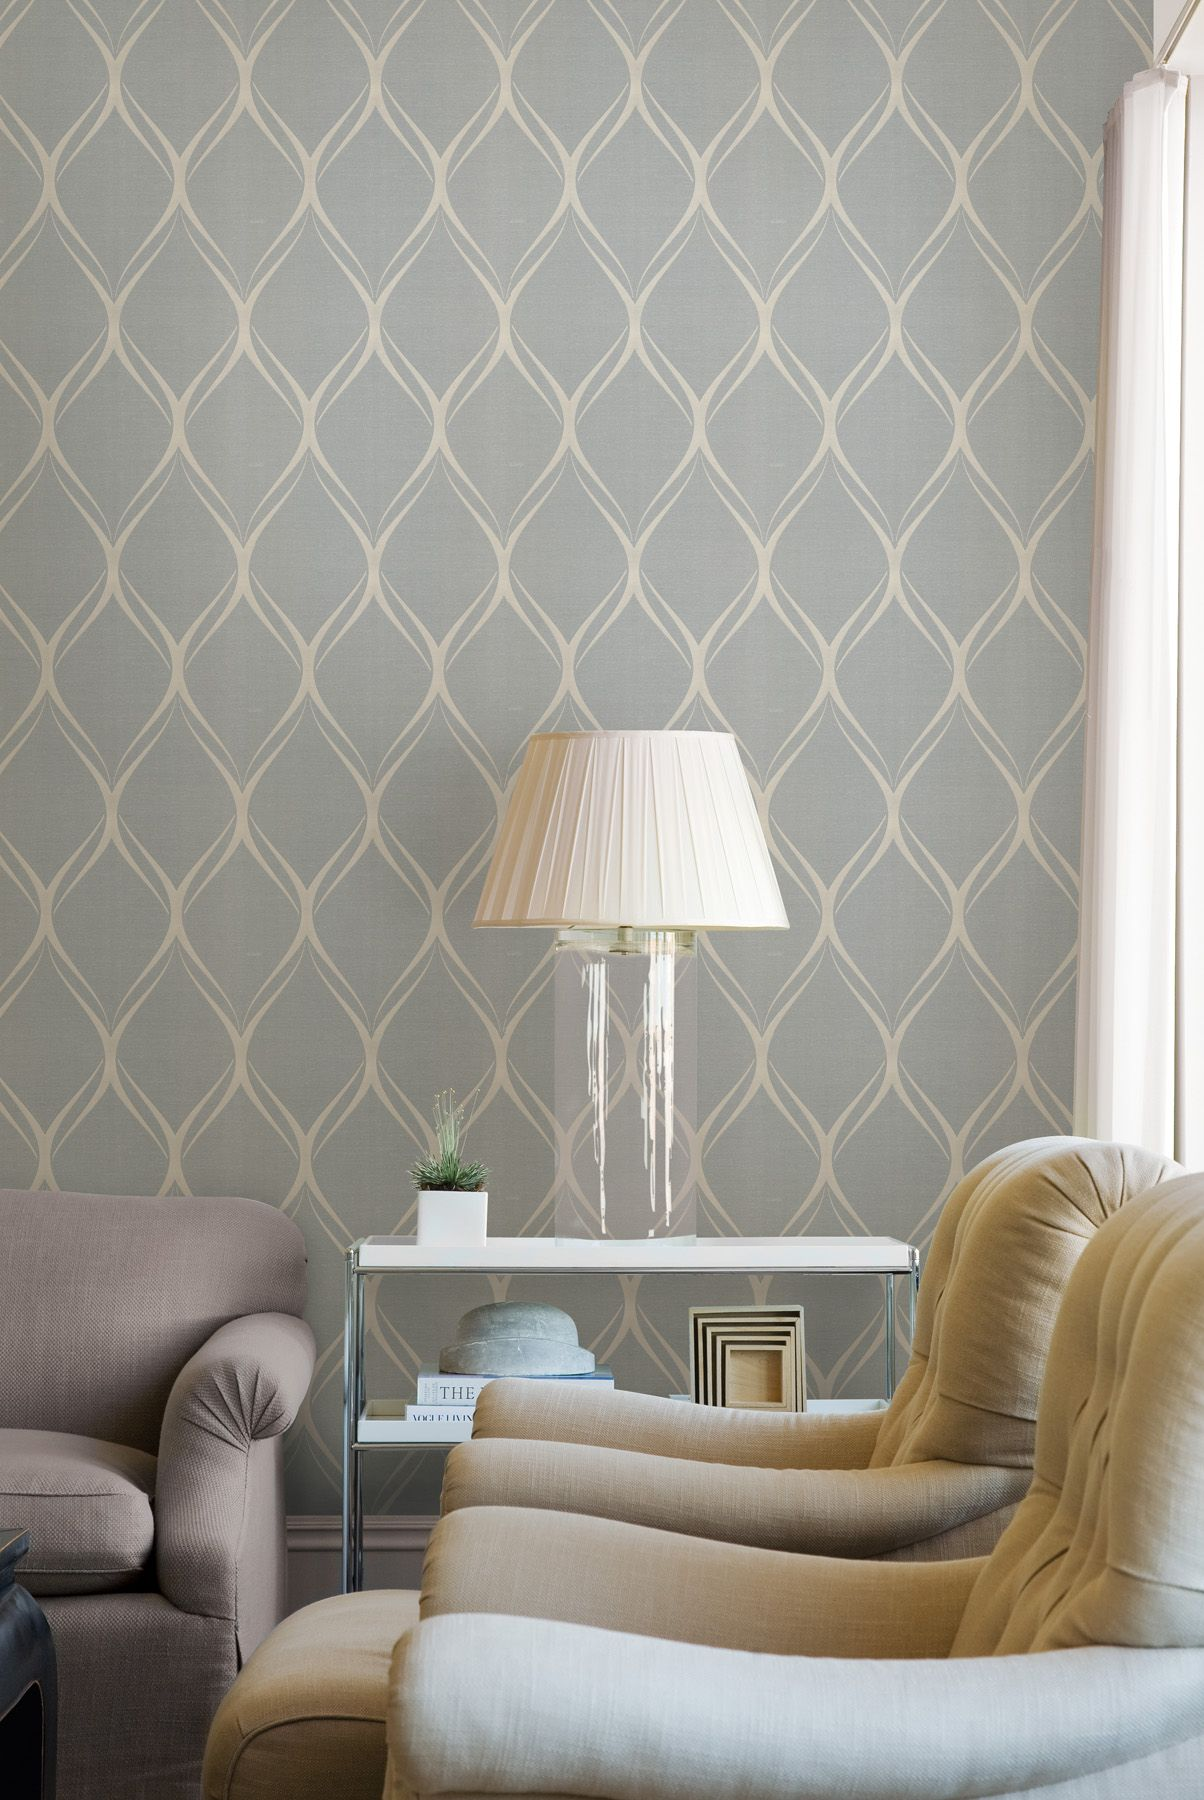 A beautiful living room with a chic feature wall wallpaper